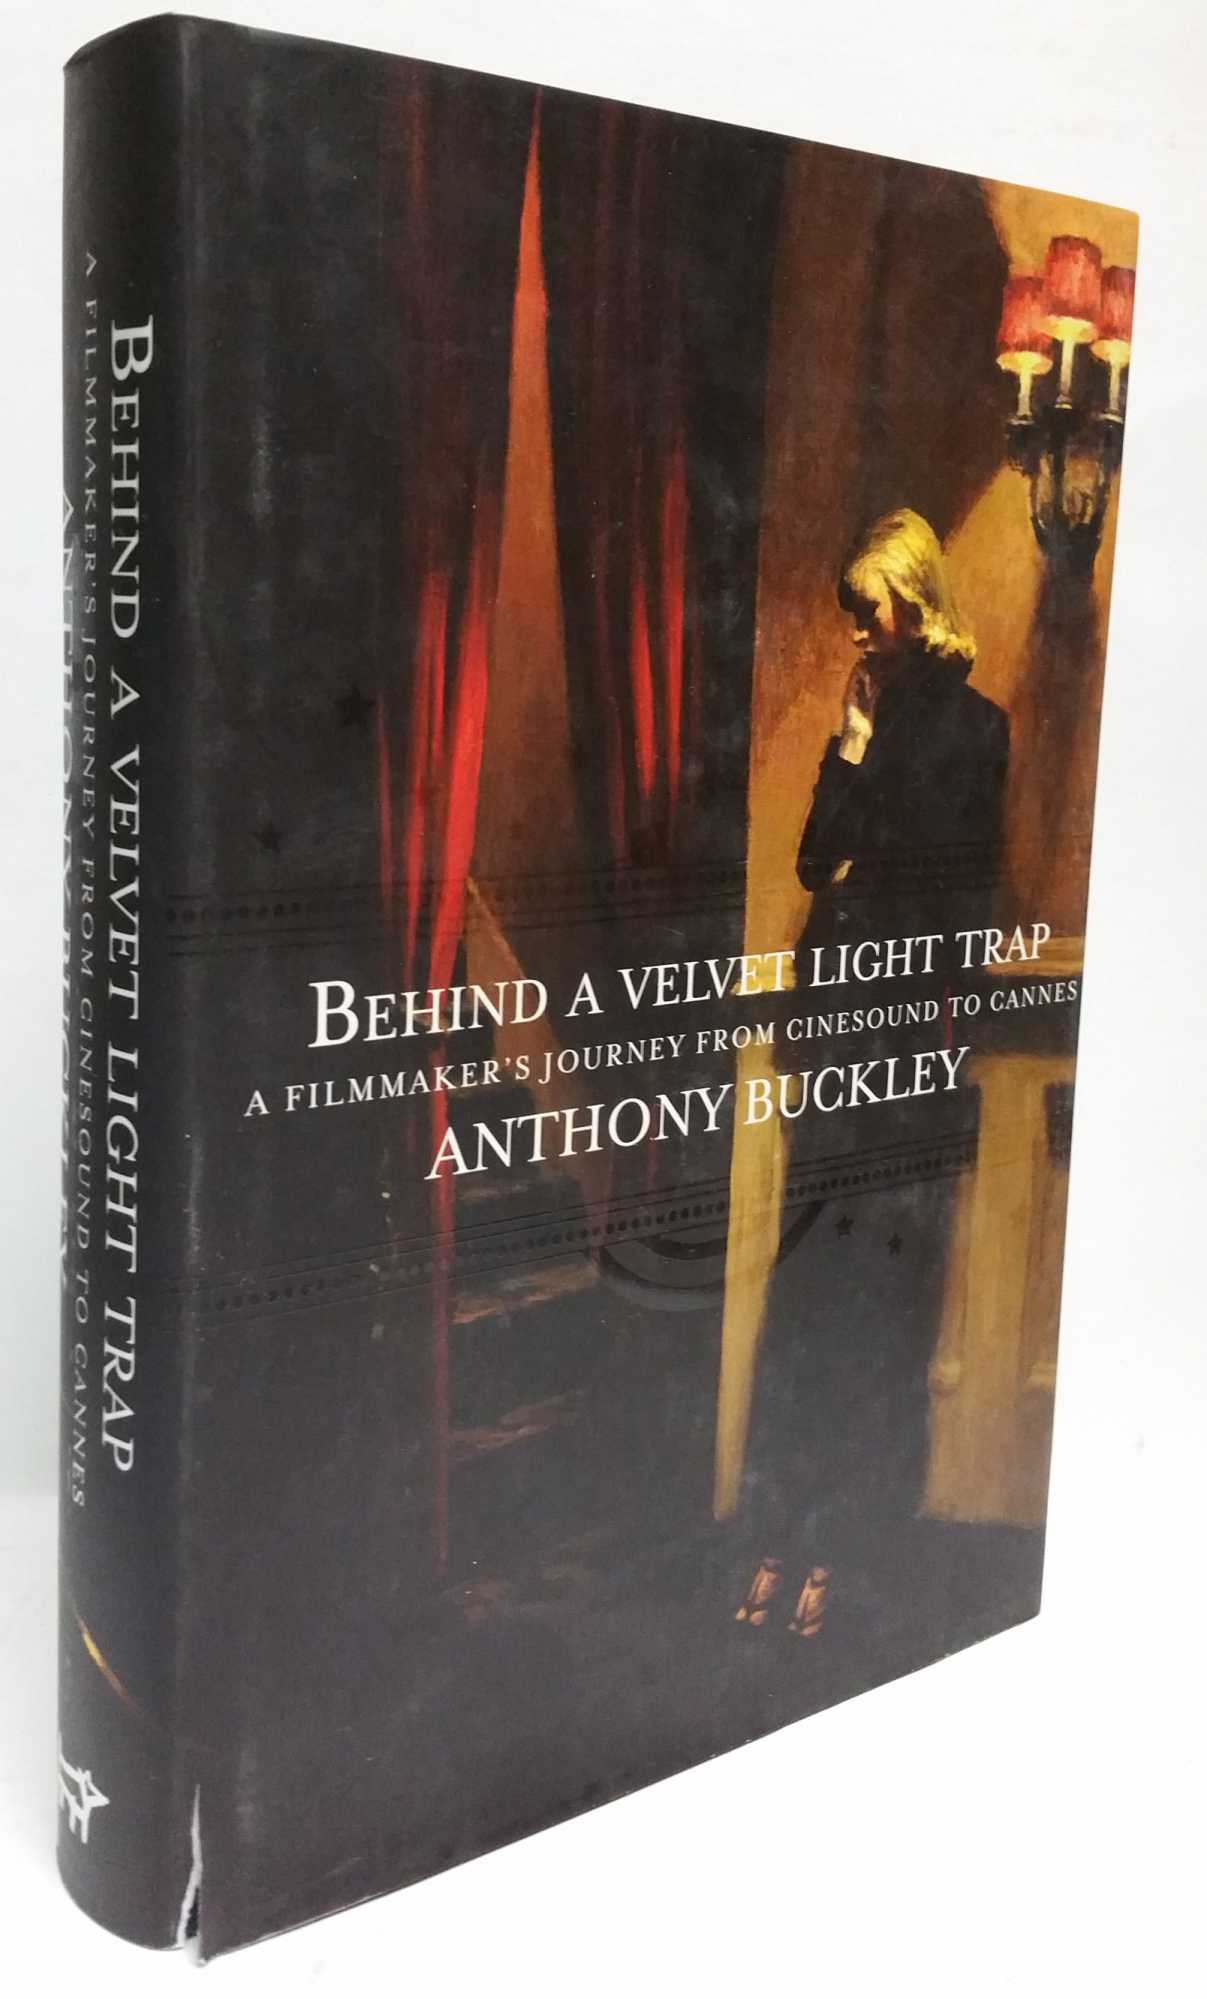 Behind a Velvet Light Trap: From Cinesound to Cannes - A Filmmakers Journey